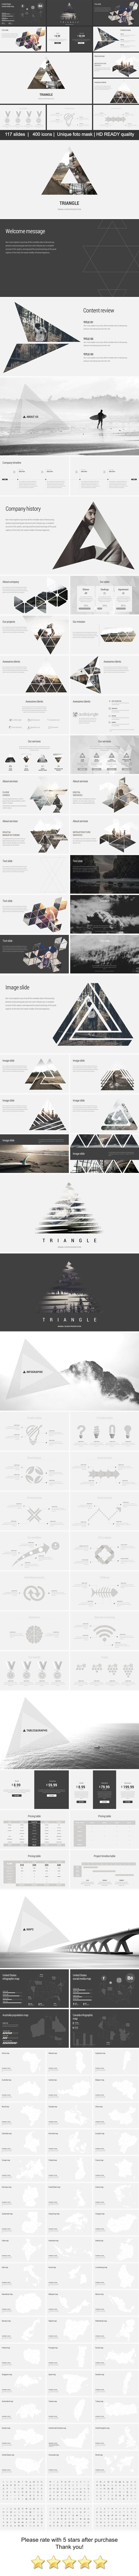 Triangle Minimal GoogleSlides Template — Google Slides PPTX #marketing #niches • Download ➝ https://graphicriver.net/item/triangle-minimal-googleslides-template/18885419?ref=pxcr